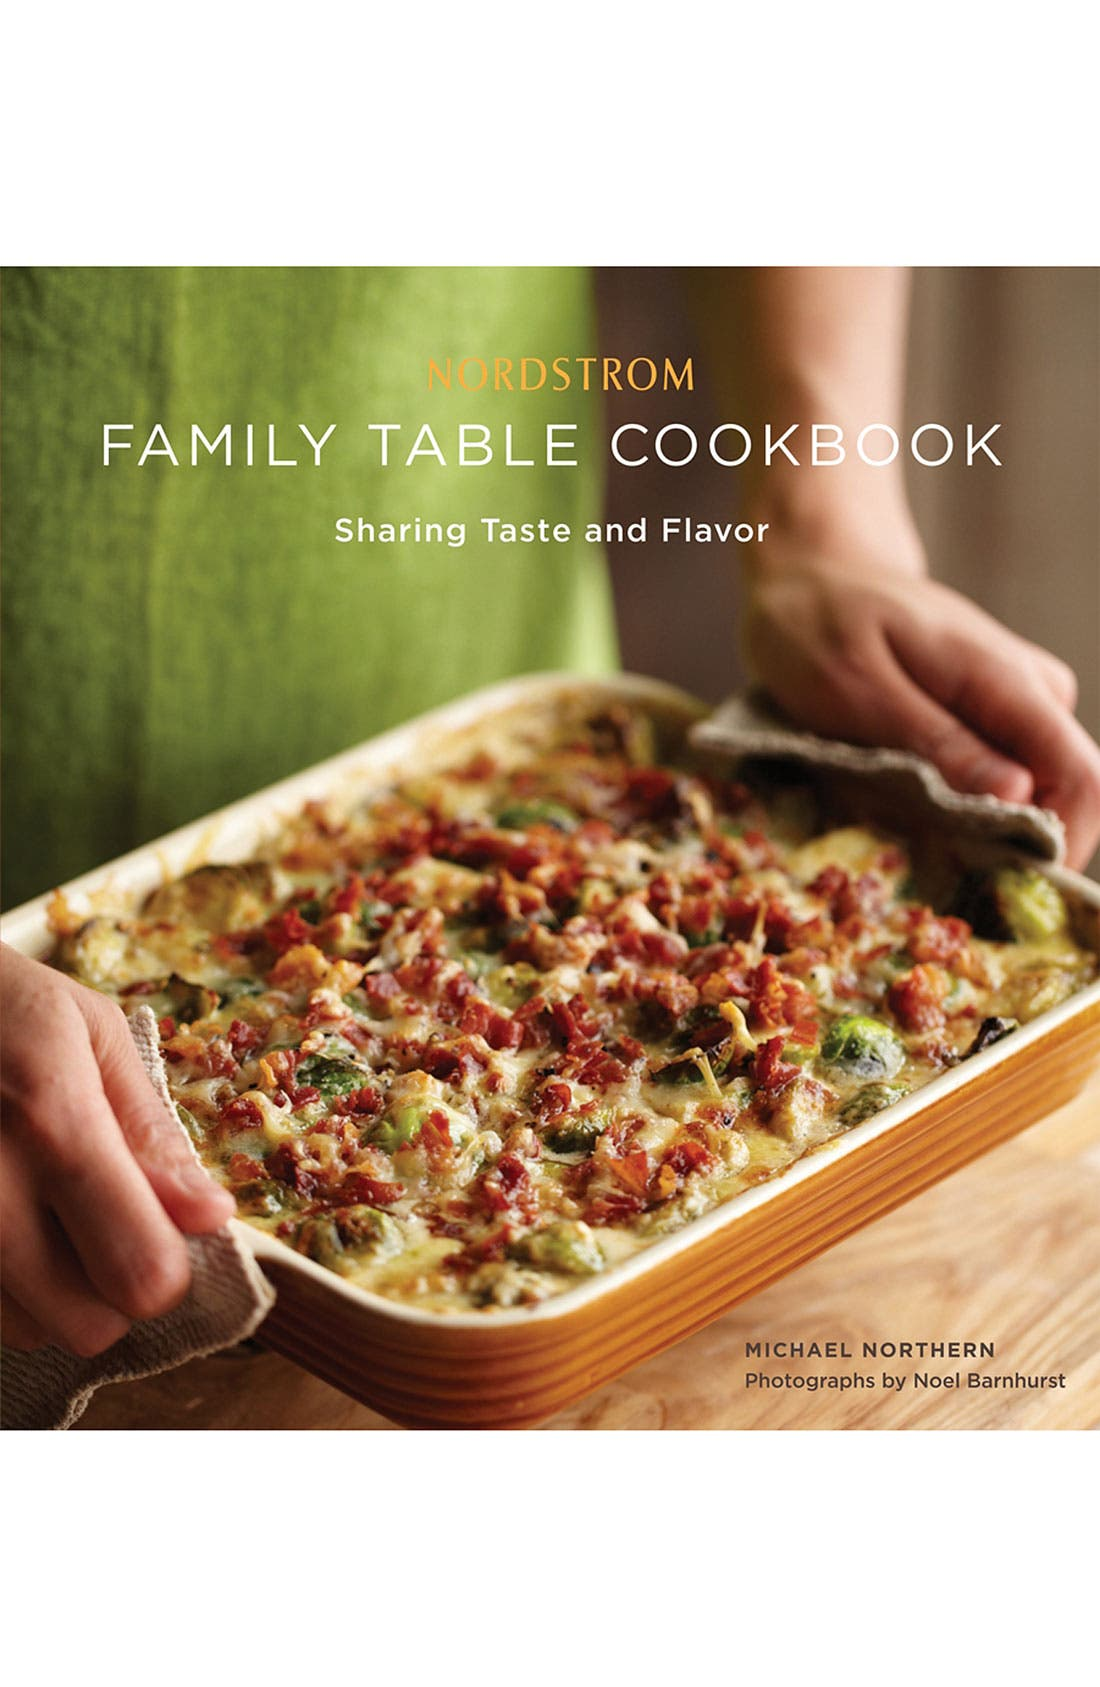 Alternate Image 1 Selected - Nordstrom Family Table Cookbook